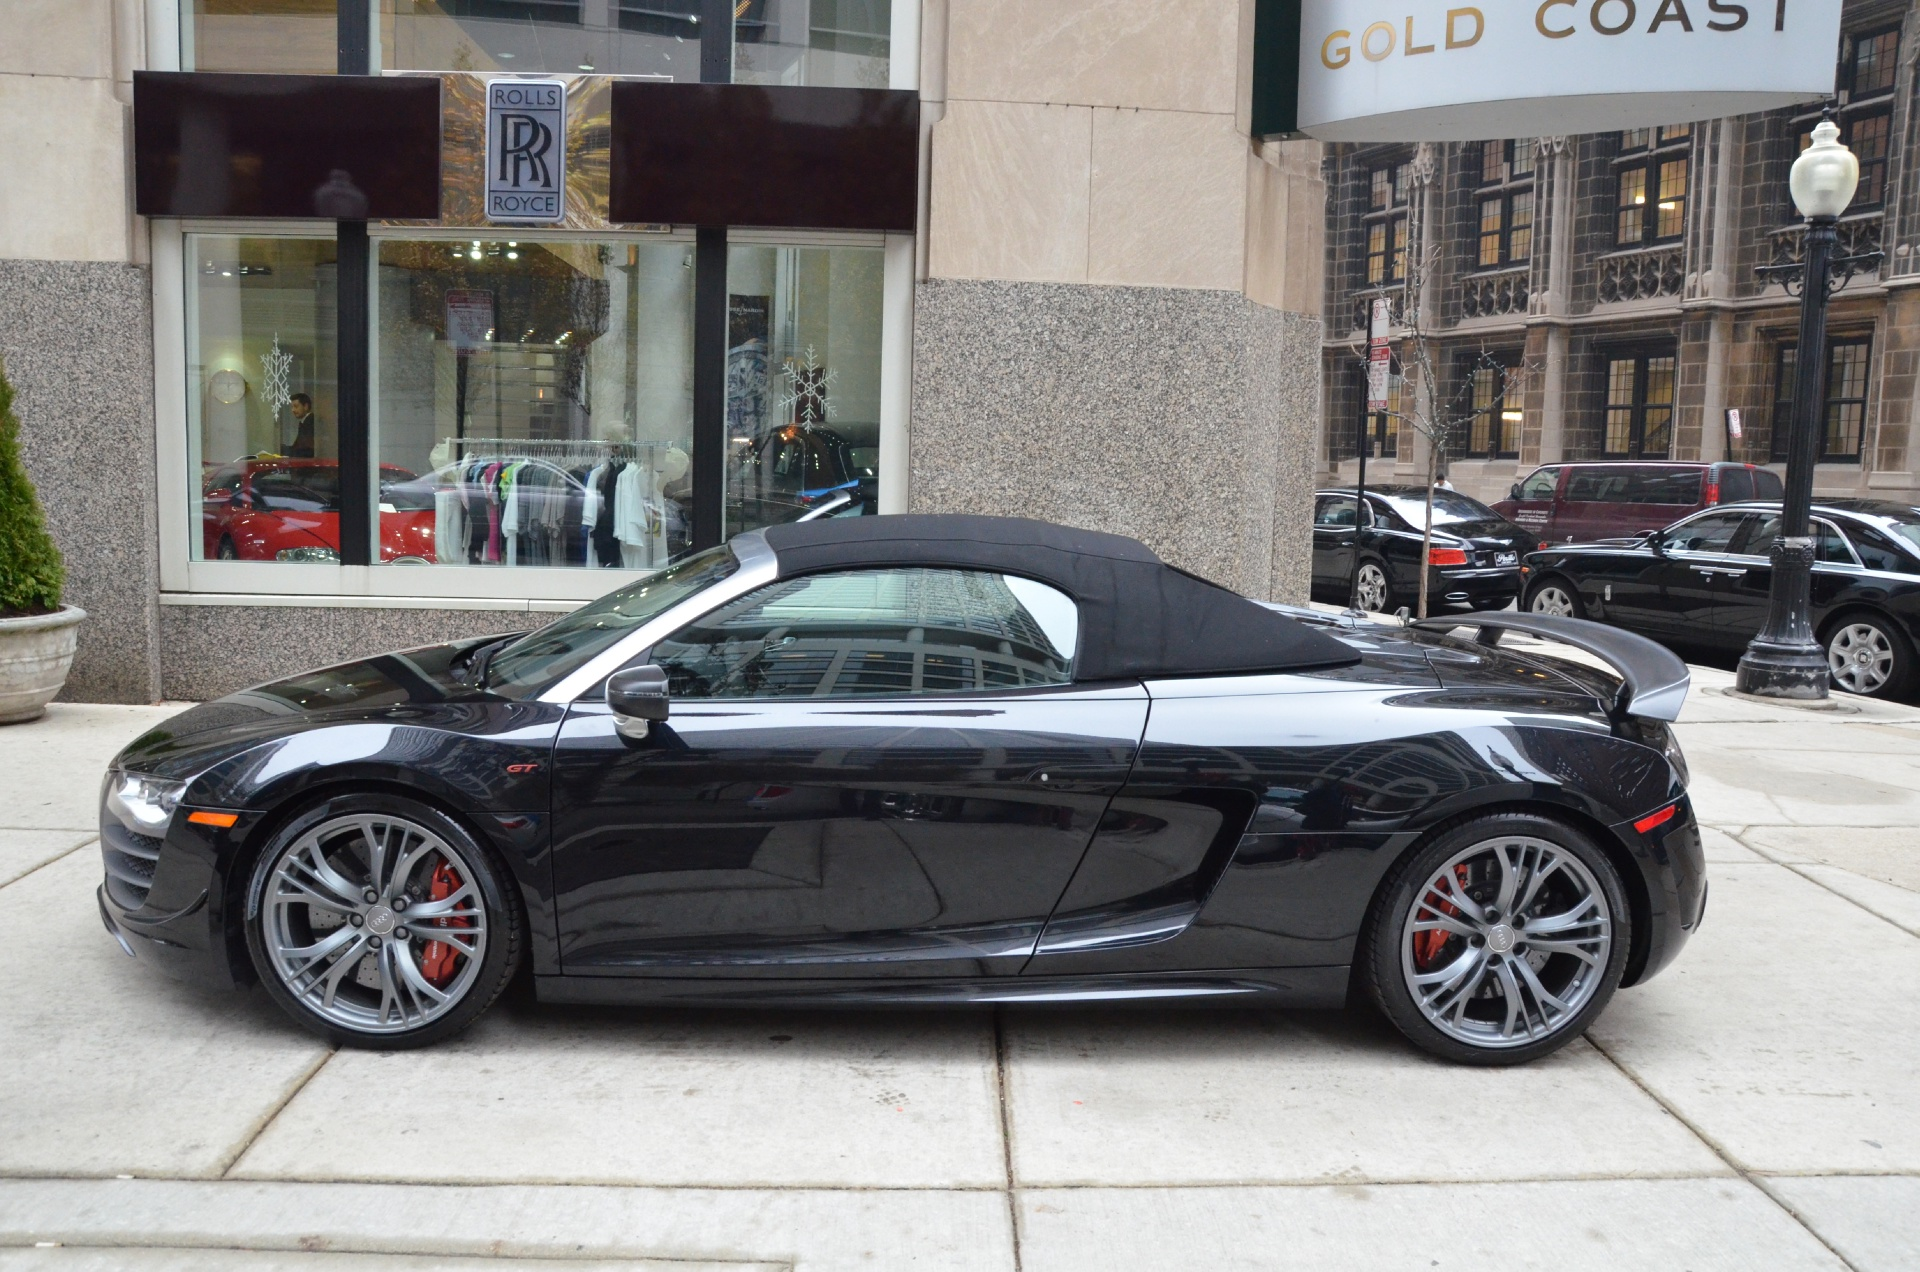 2012 audi r8 gt stock r110a for sale near chicago il il audi dealer. Black Bedroom Furniture Sets. Home Design Ideas